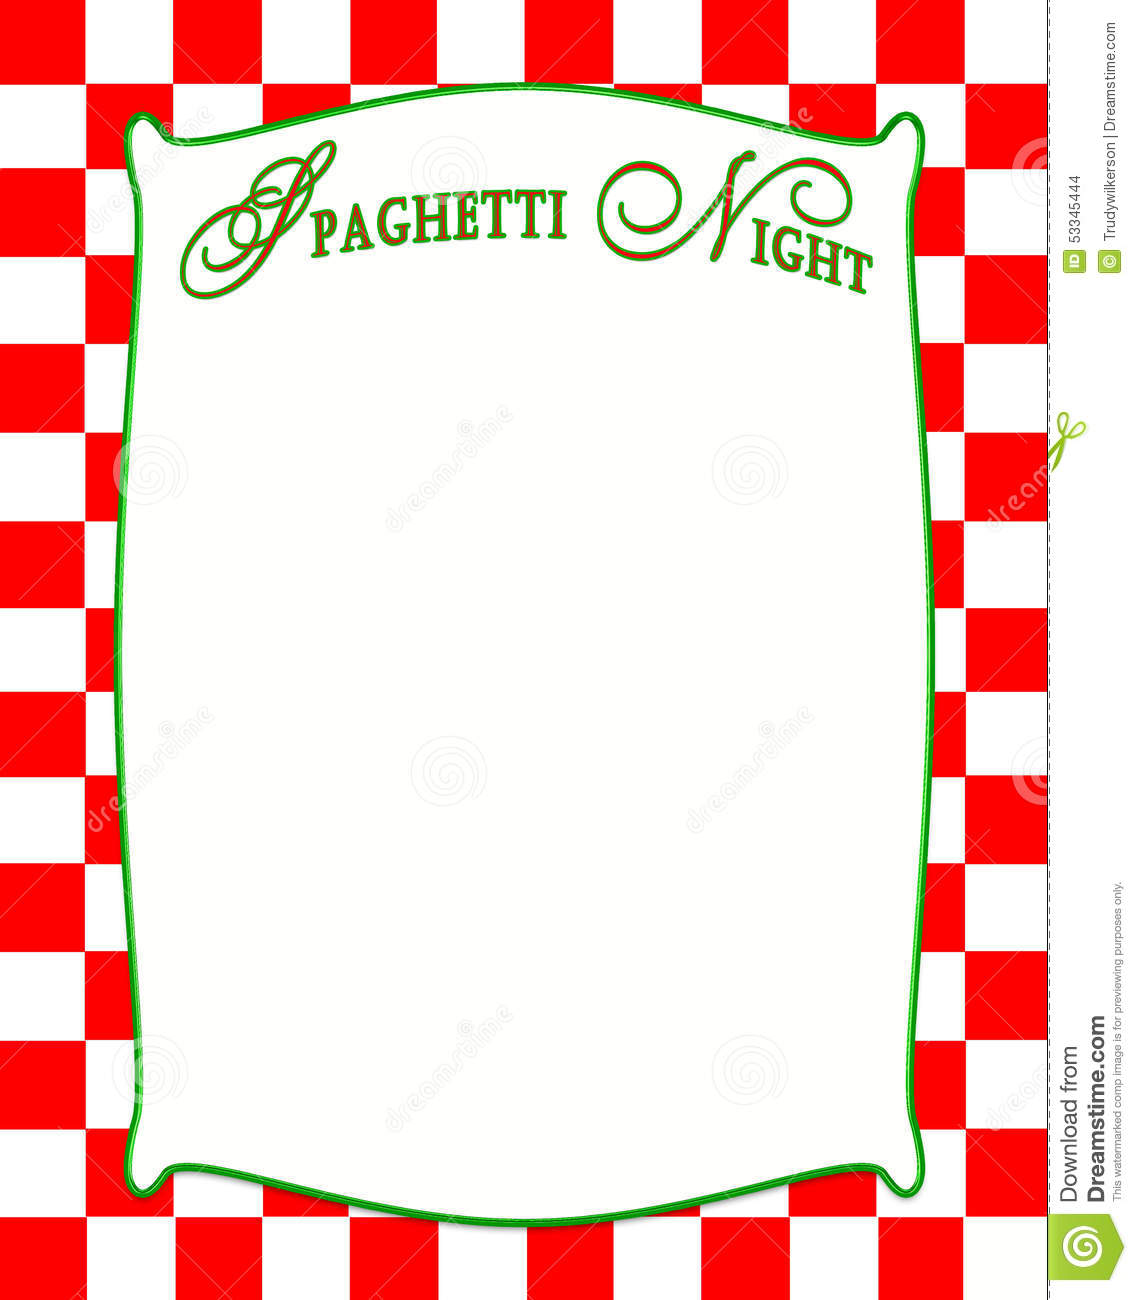 Spaghetti Border Clip Art spaghetti night background in red checkered ...